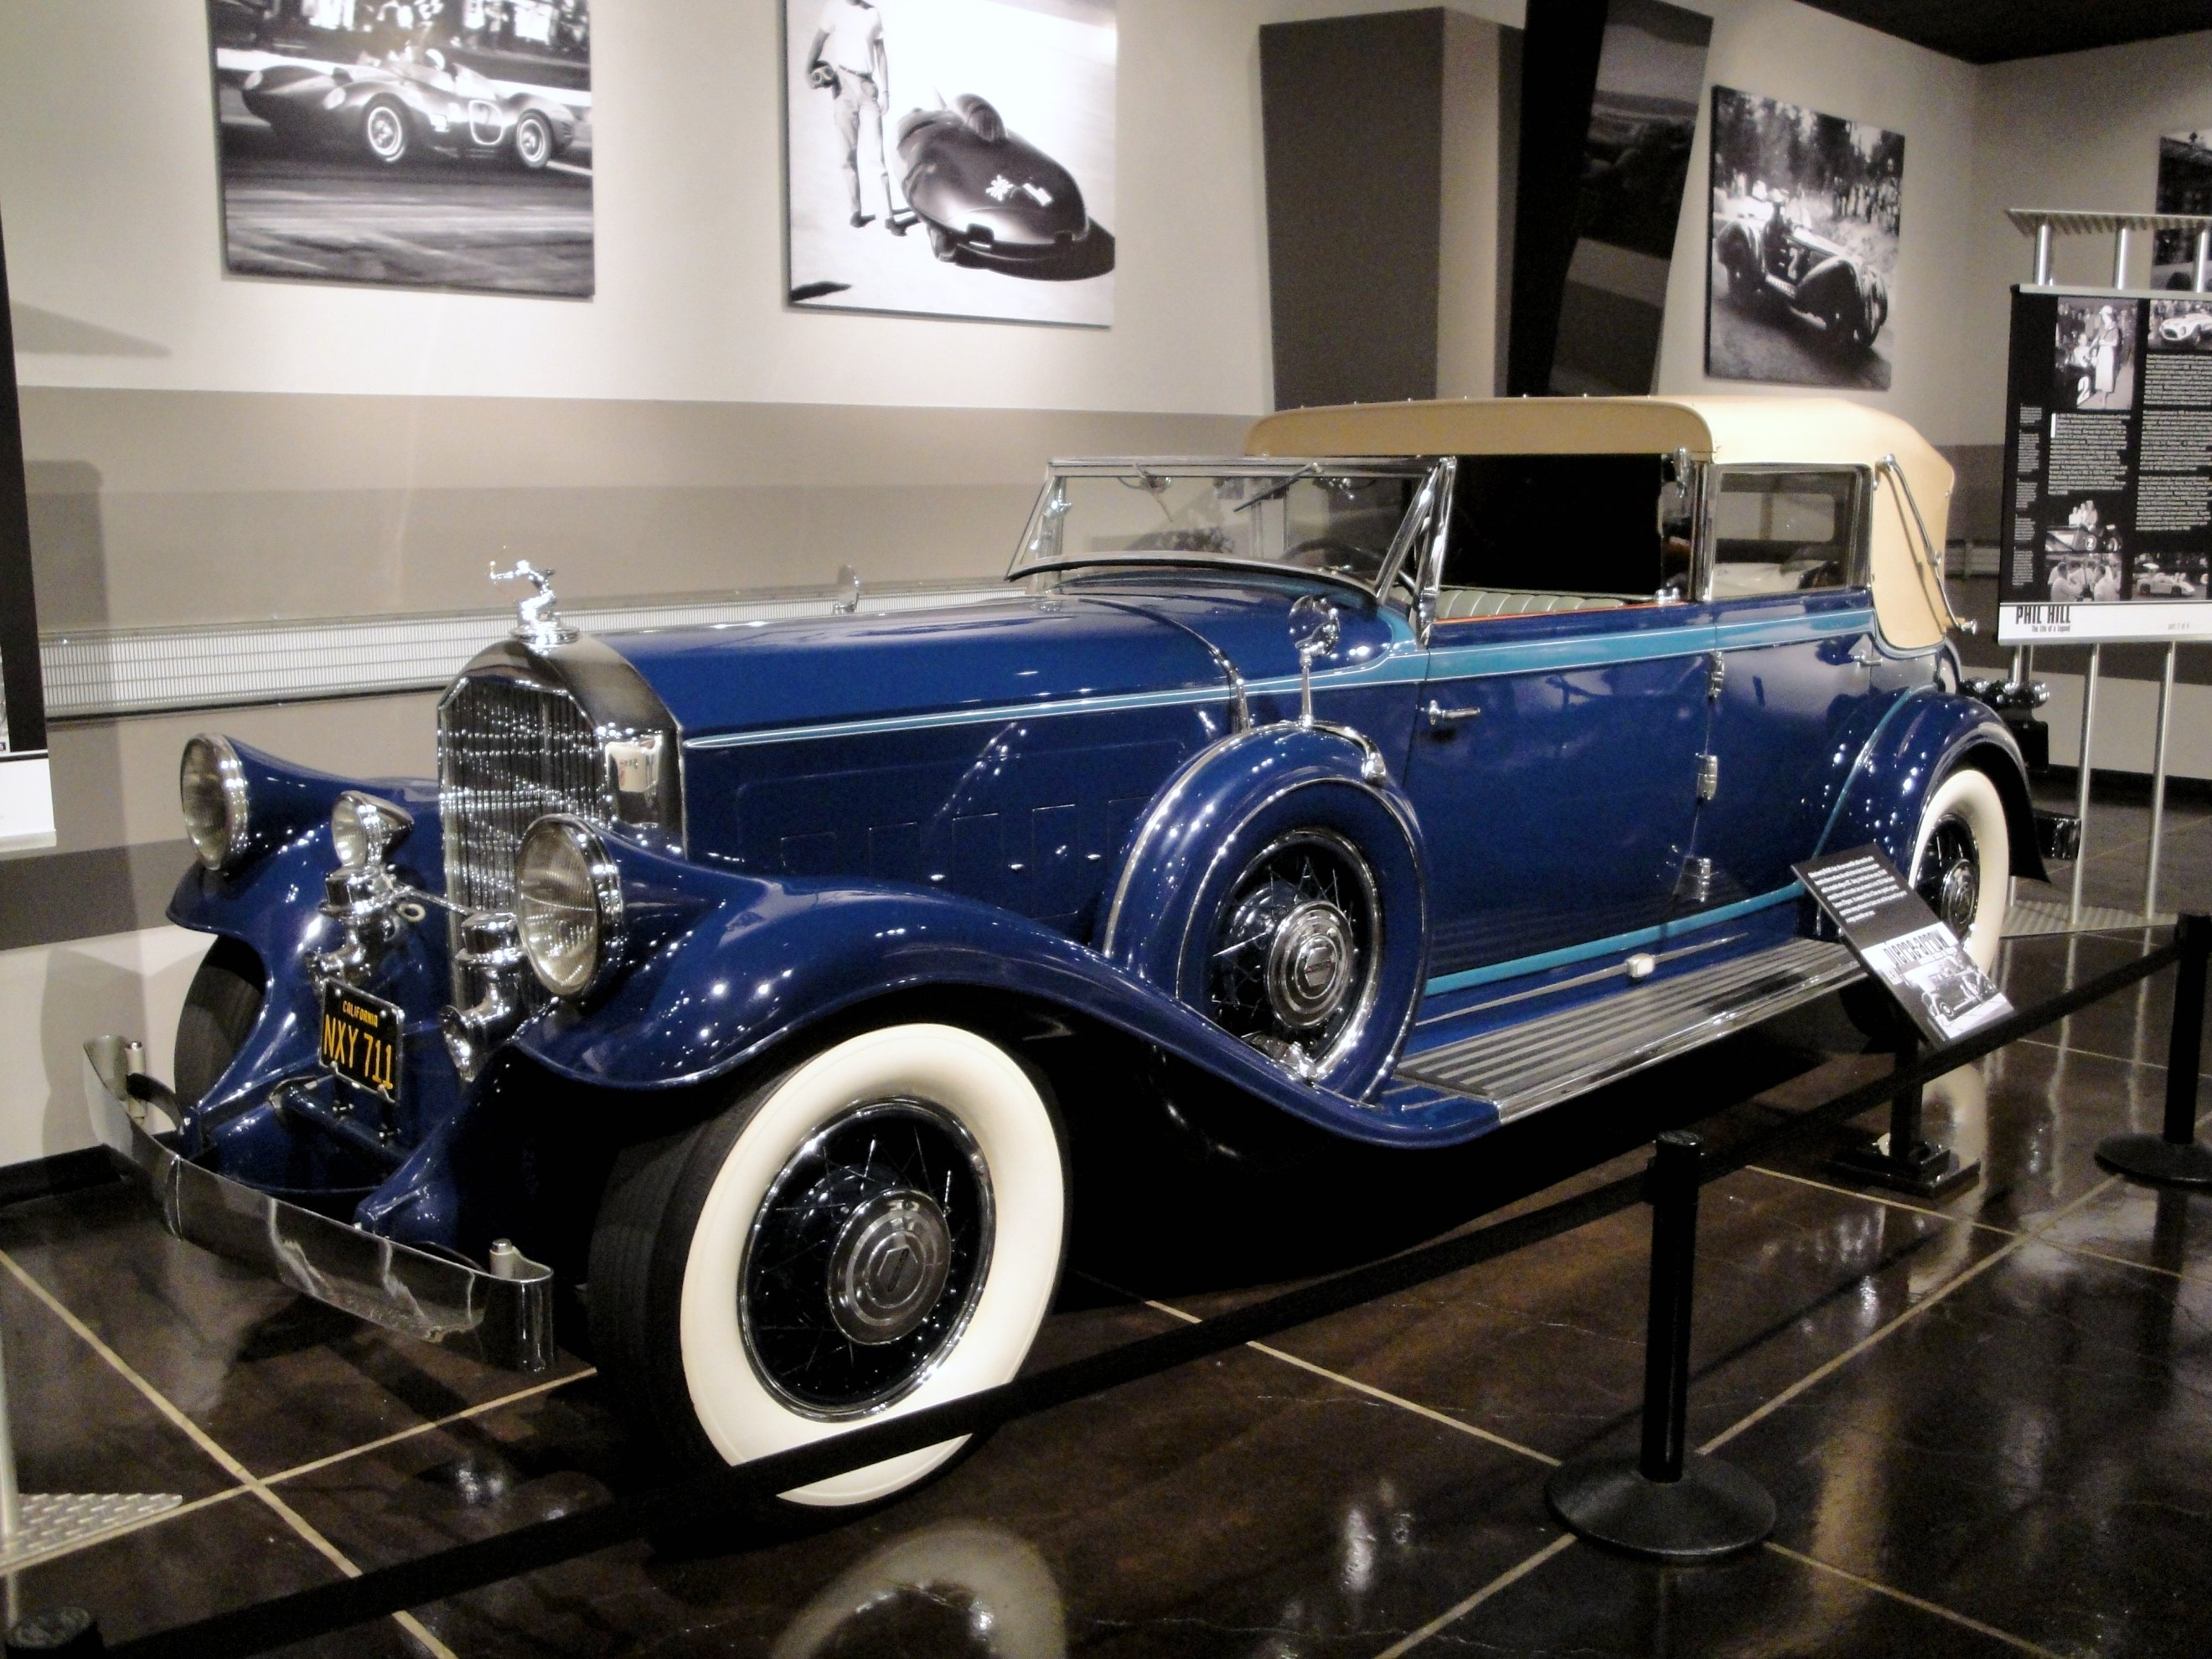 File:1931 Pierce-Arrow by LeBaron.jpg - Wikimedia Commons